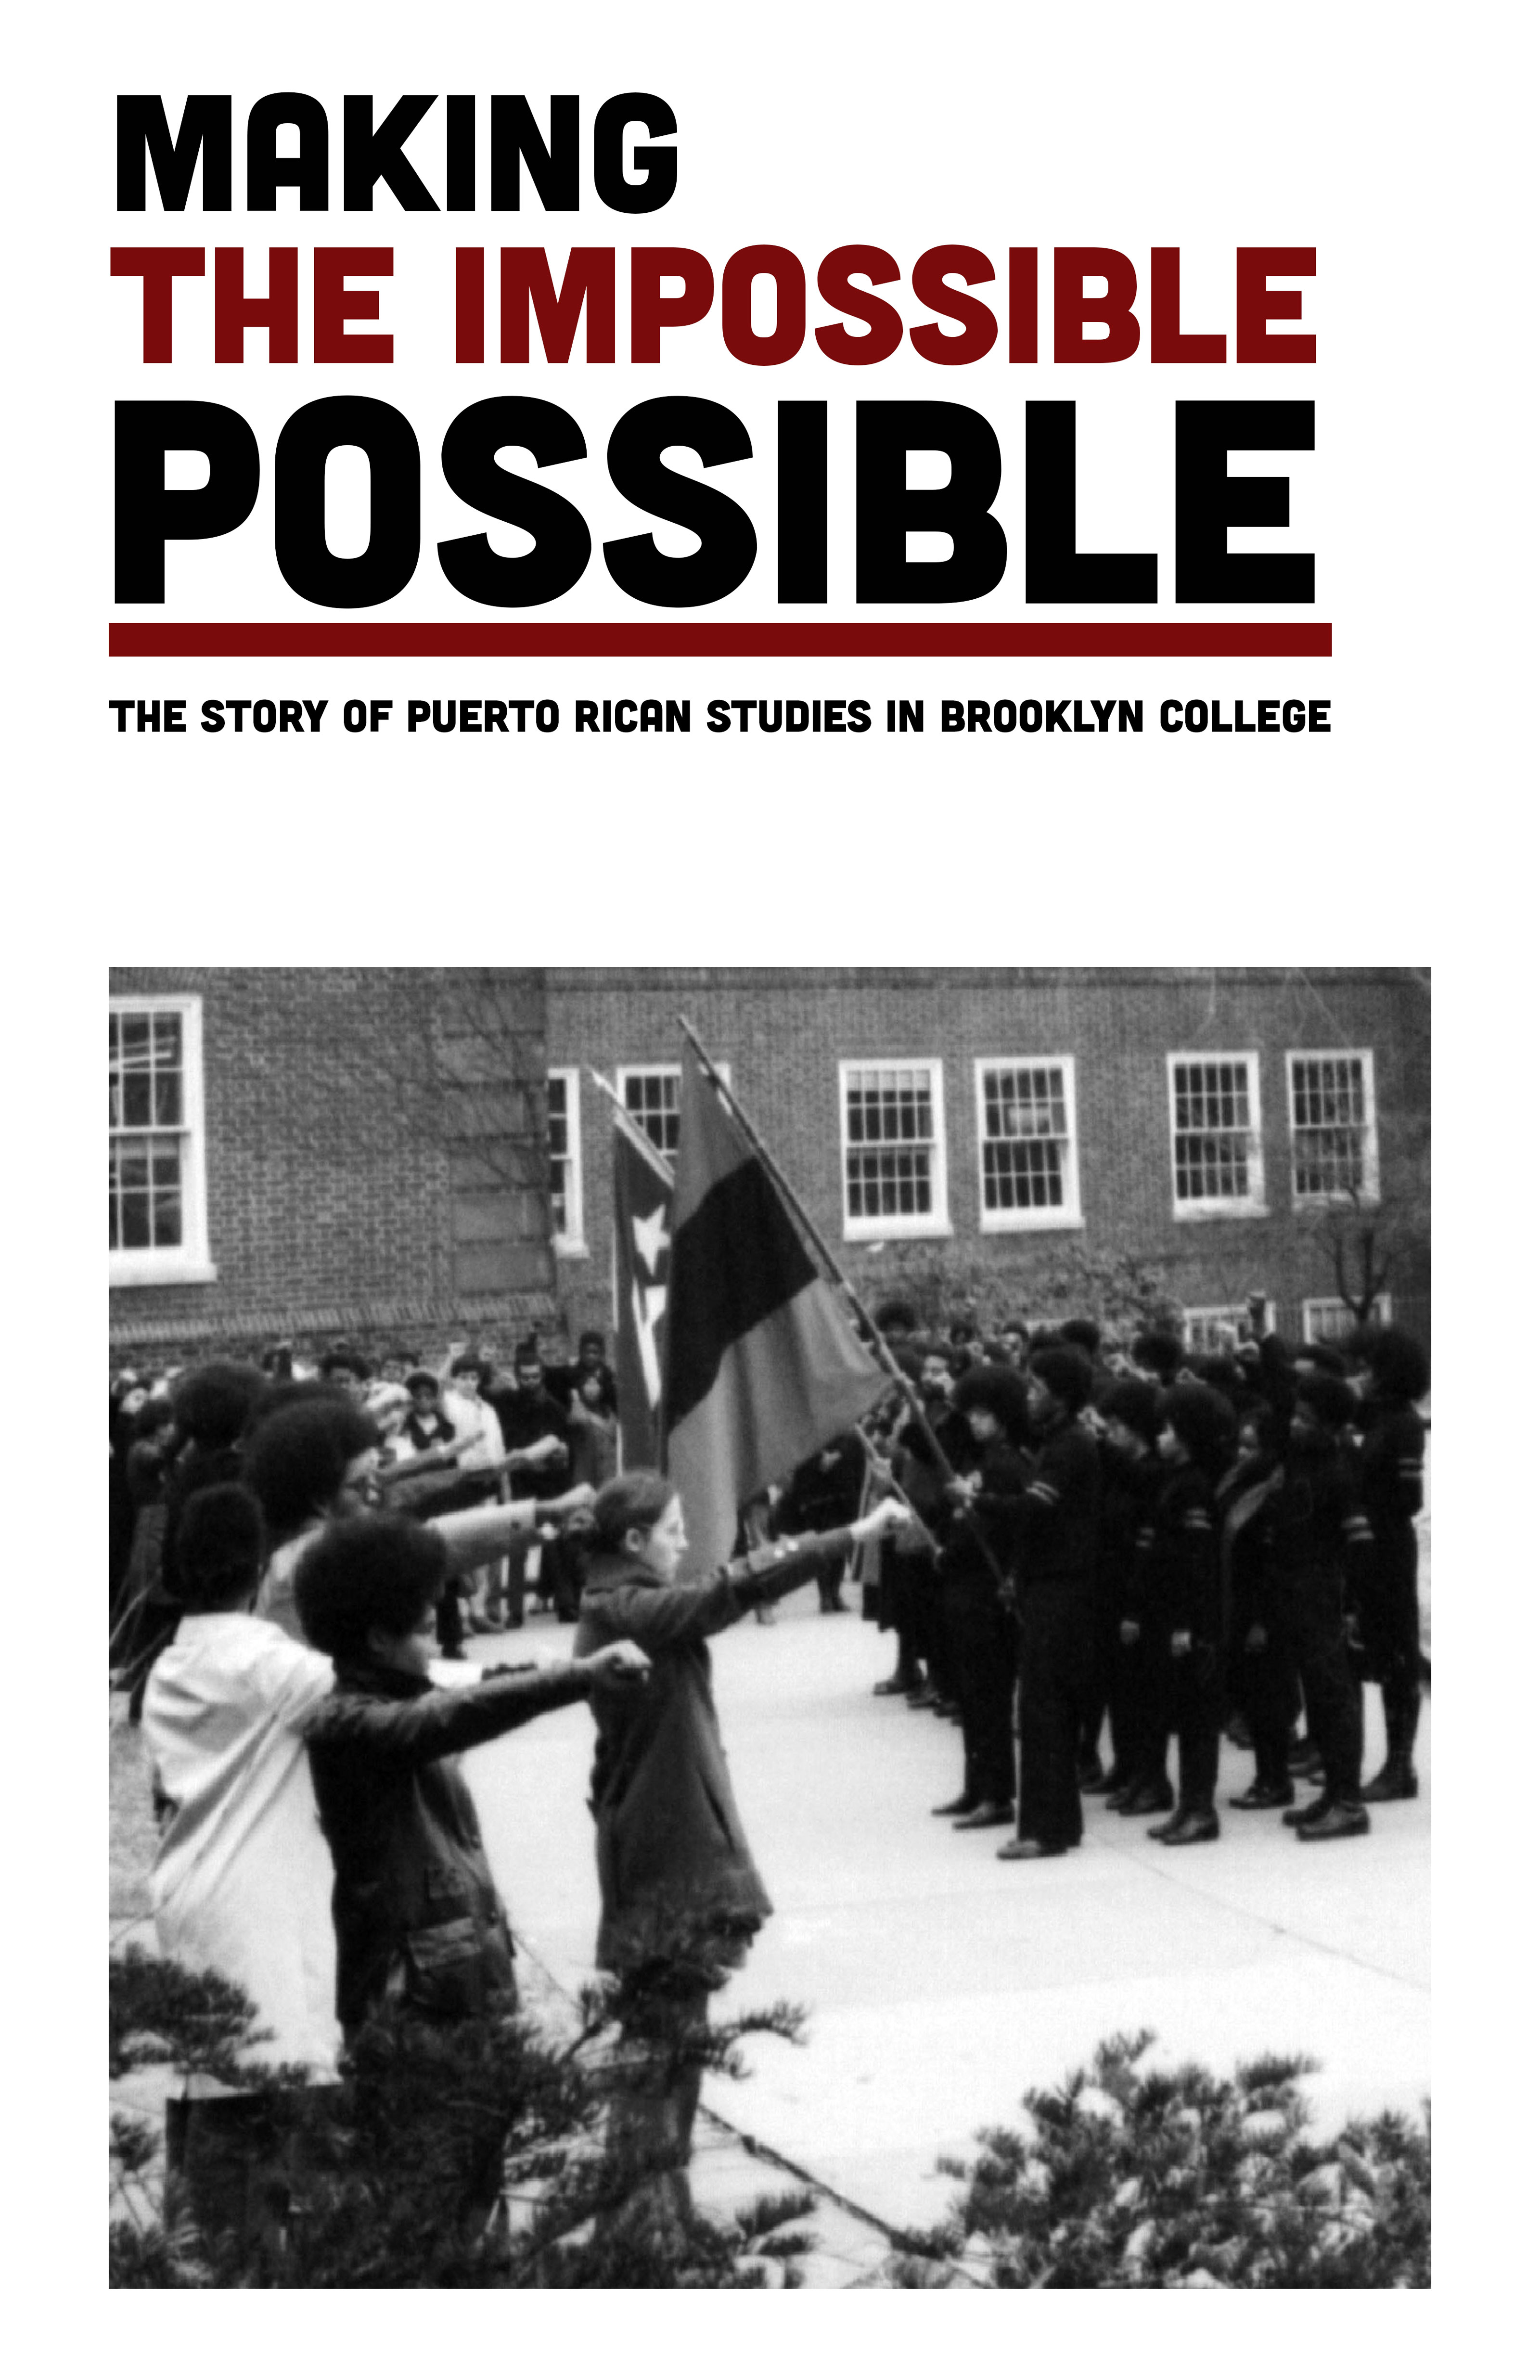 poster for Making the Impossible Possible: The Story of Puerto Rican Studies in Brooklyn College